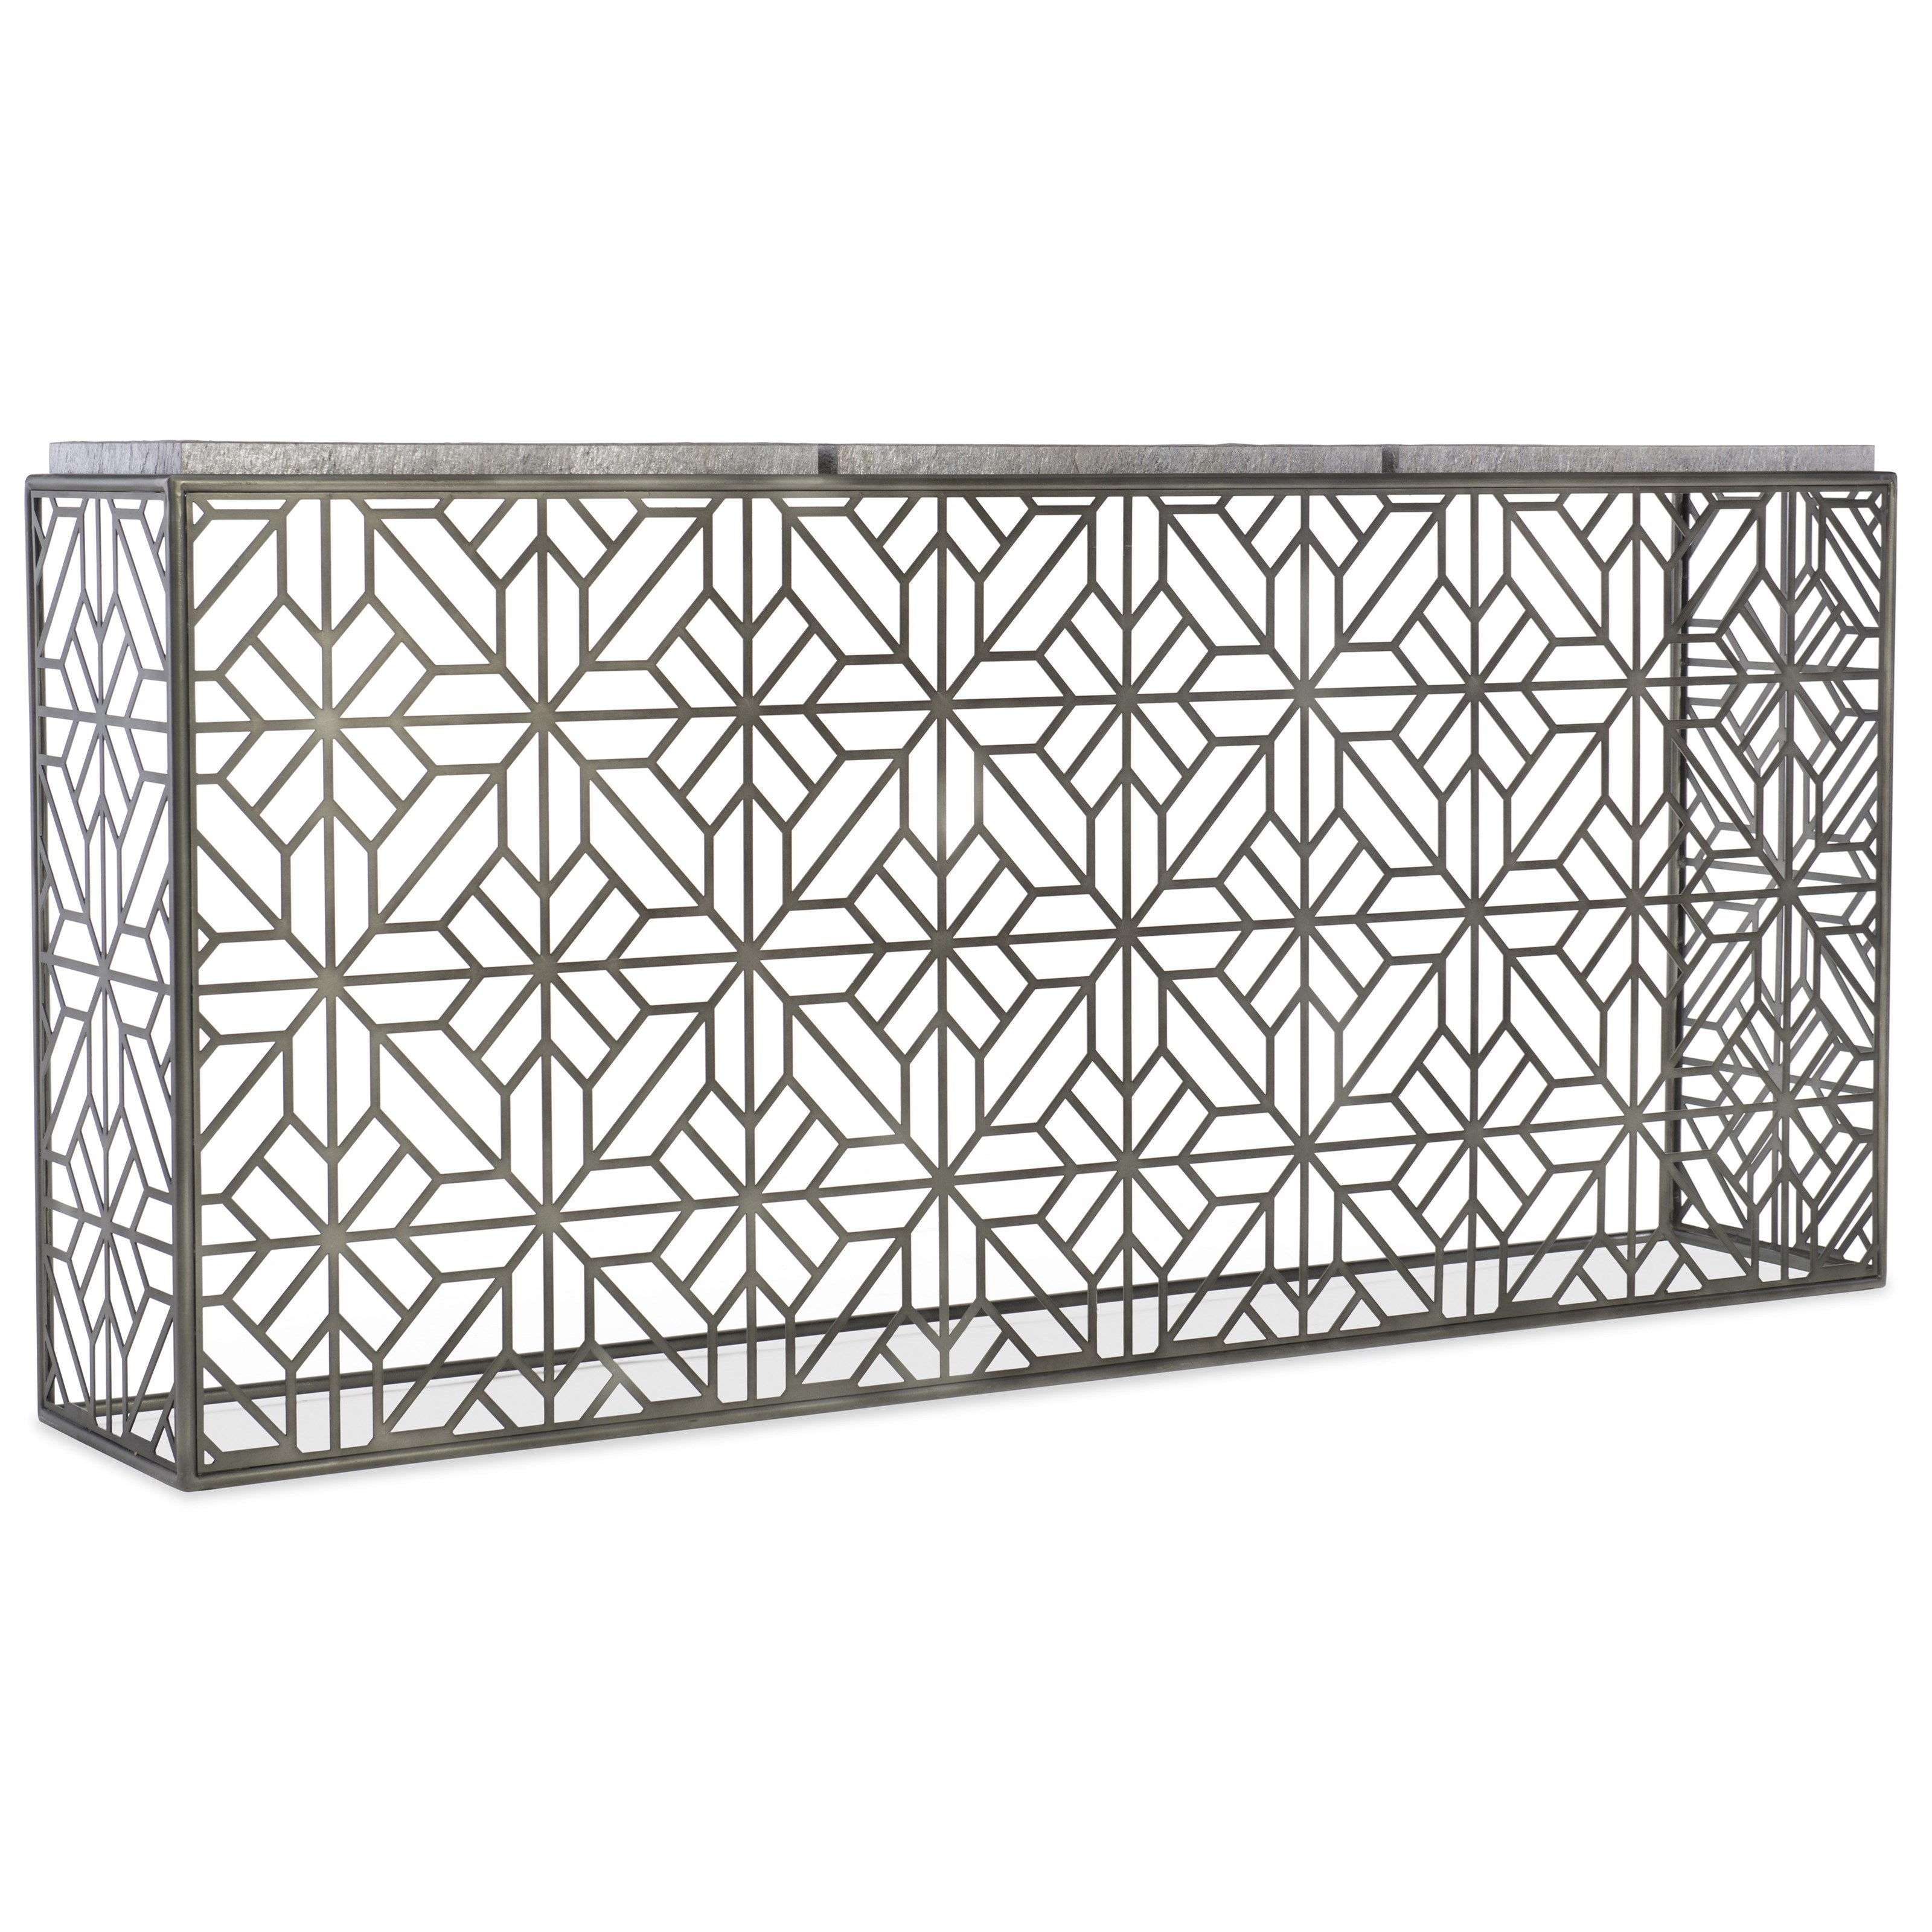 Melange Angeline Console by Hooker Furniture at Fisher Home Furnishings